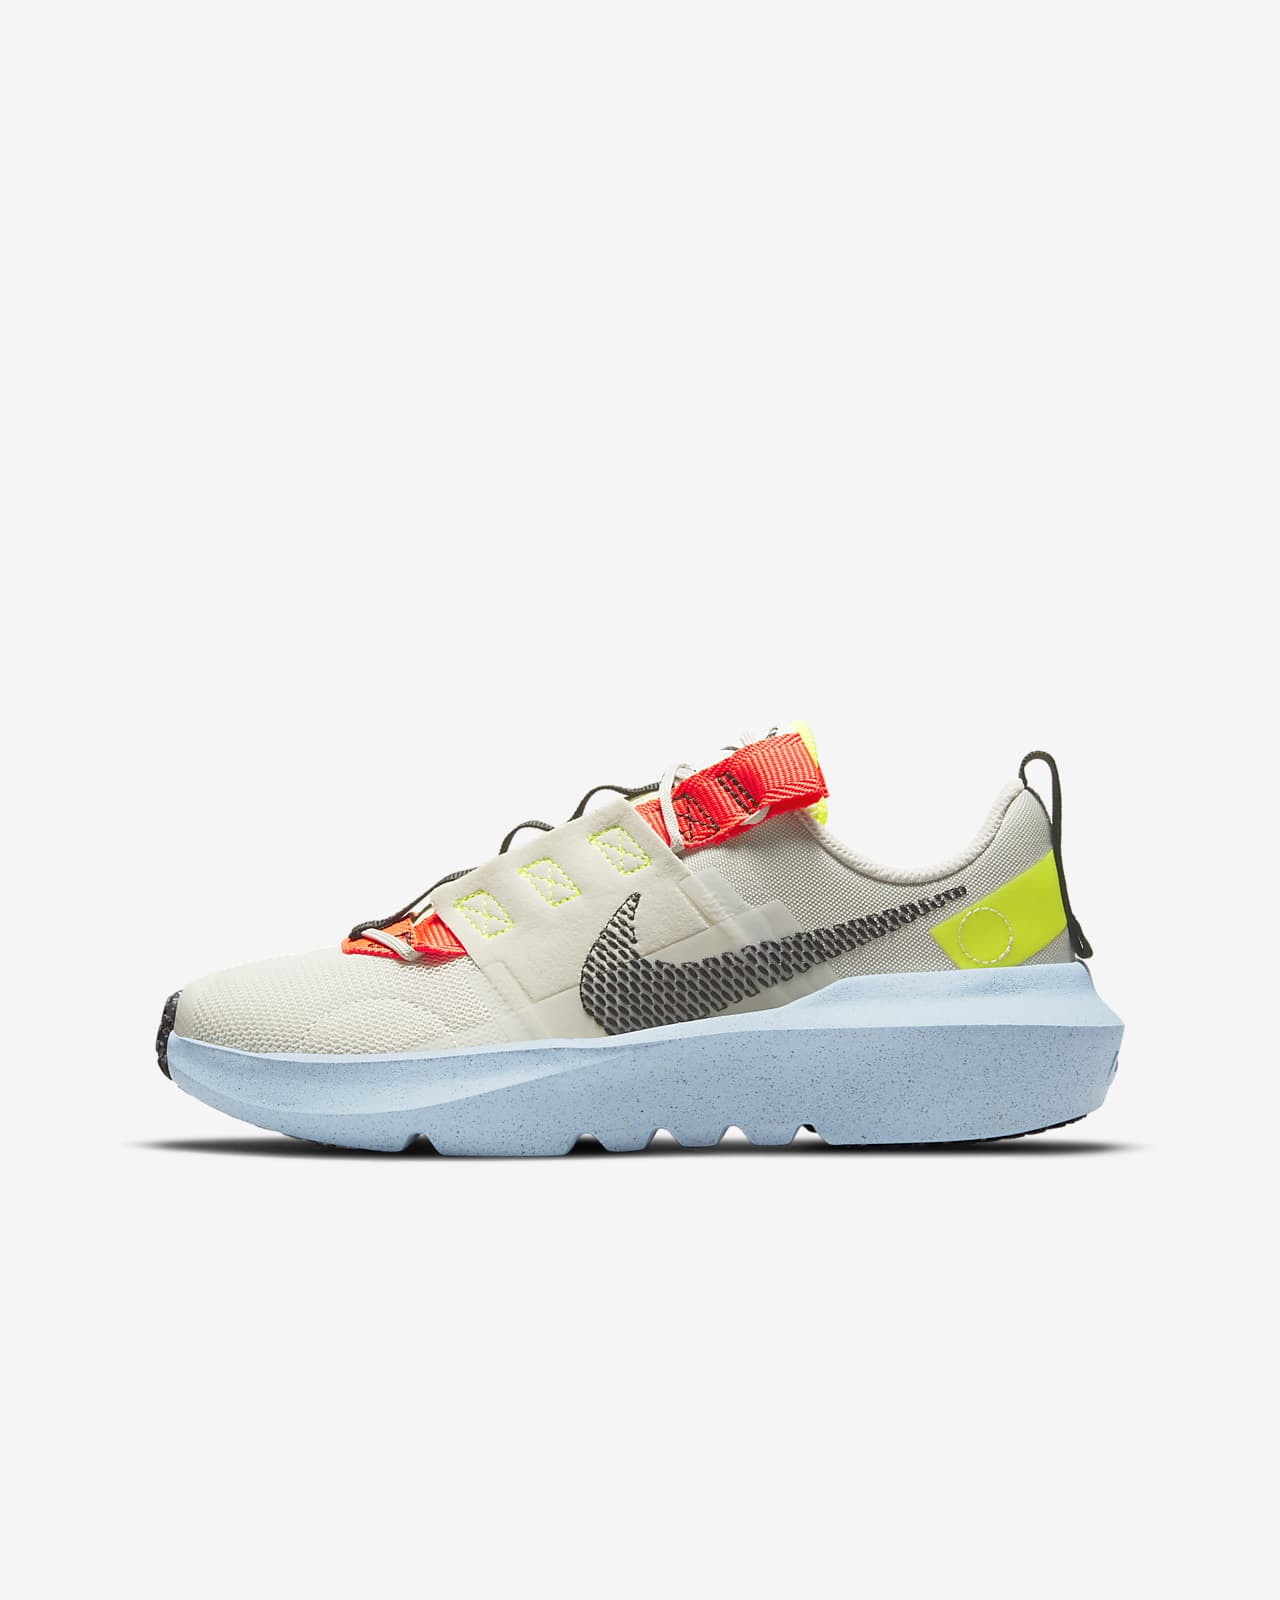 Nike Crater Impact Older Kids' Shoes